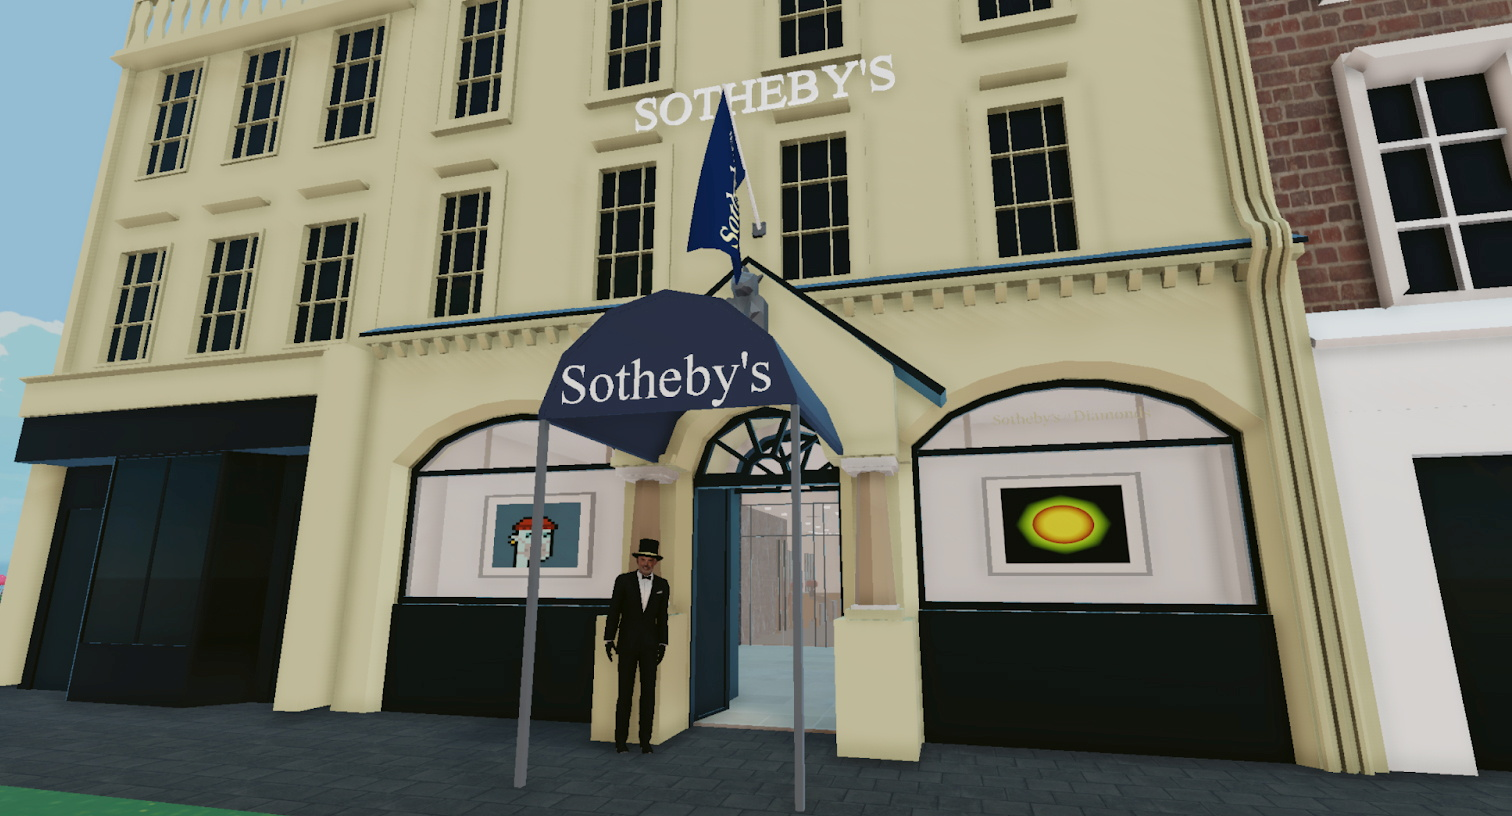 Sotheby's Virtual Gallery in the Voltaire Art District of Decentraland is seen in this handout picture, June 10, 2021. Decentraland Foundation/Handout via REUTERS